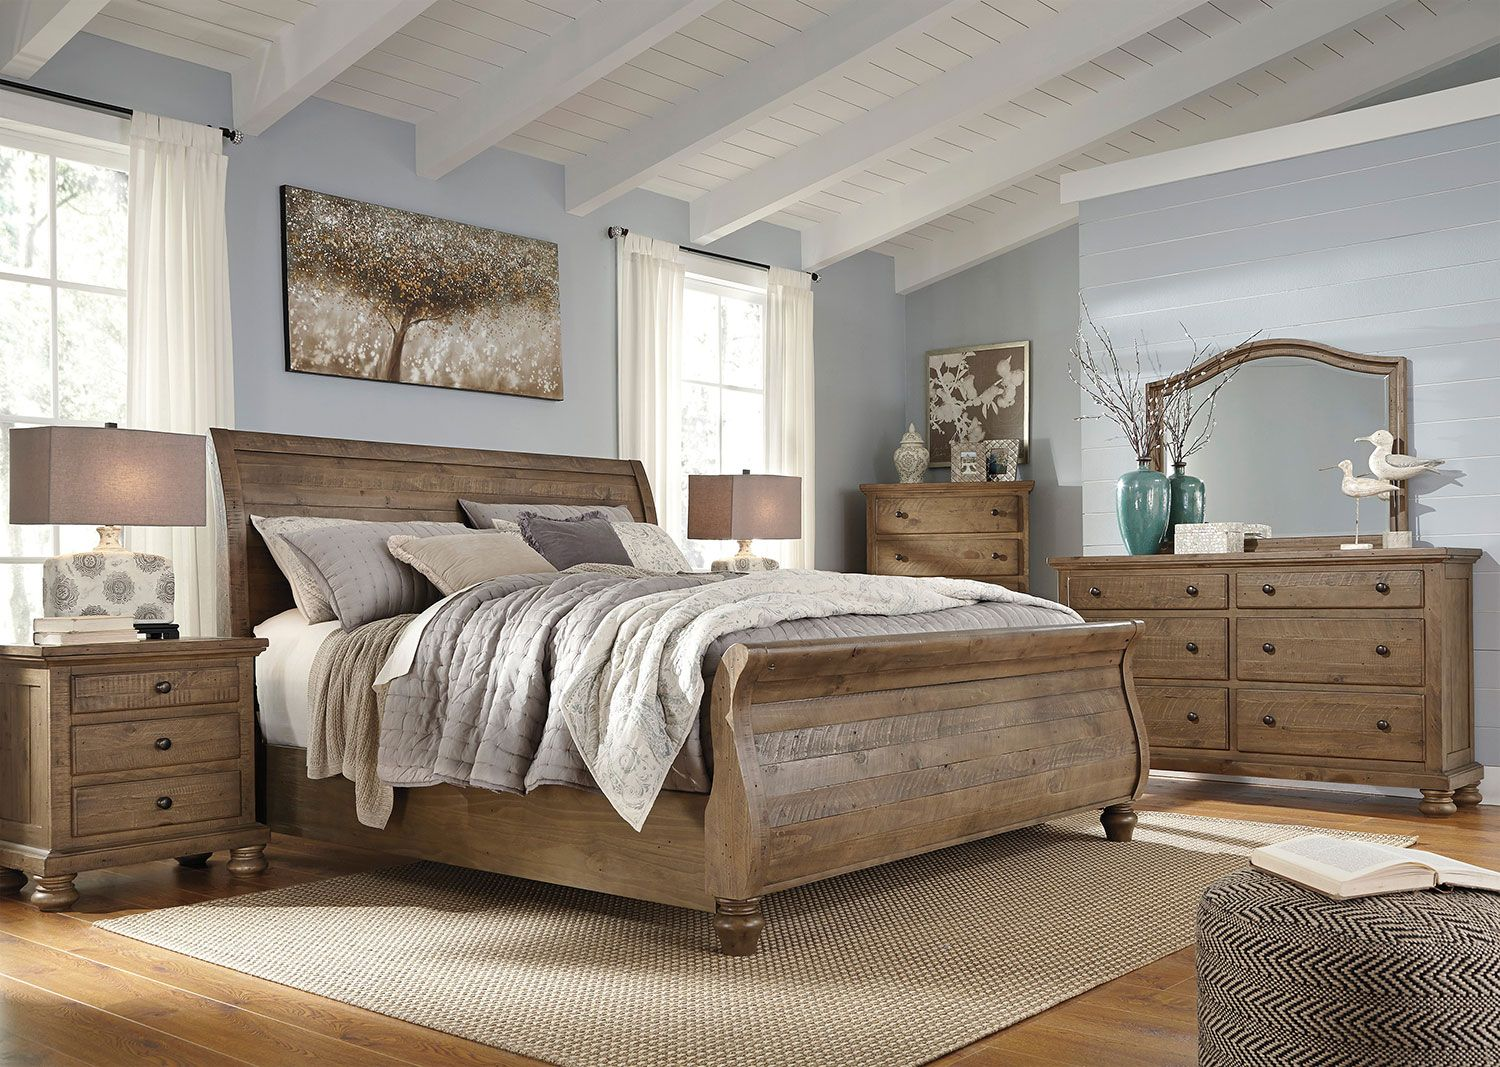 Bedroom Furniture Hayden King Sleigh Bed Weathered Grey Master Bedroom Set Brown Furniture Bedroom Discount Bedroom Furniture